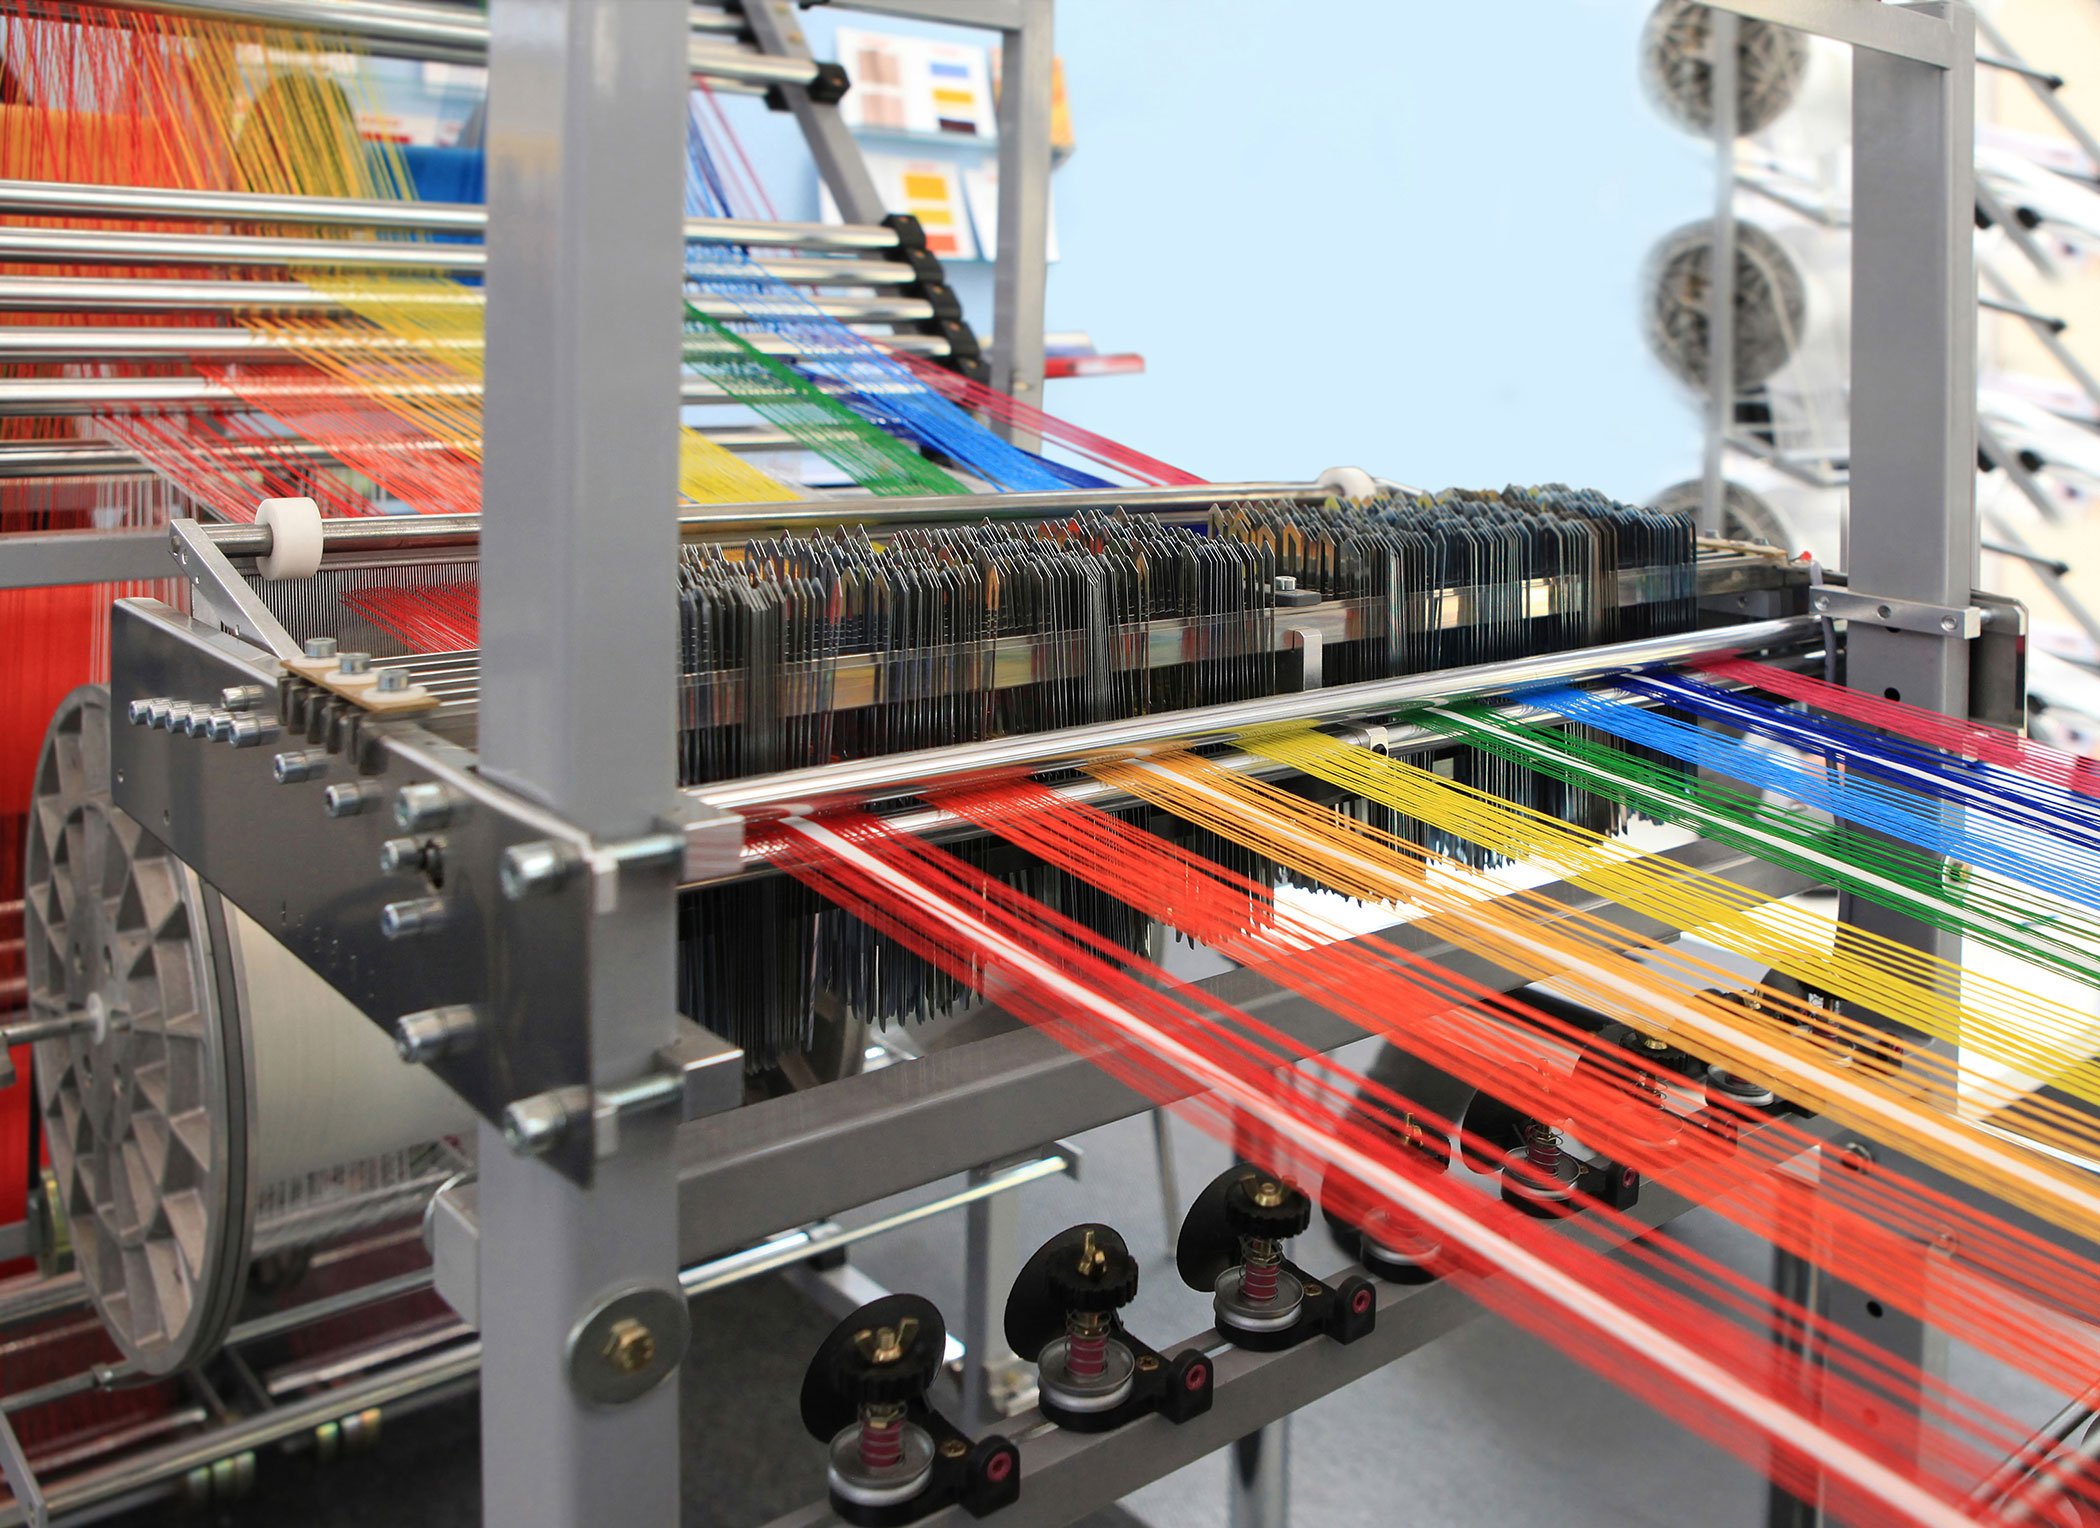 Weaving together a spotless textile industry